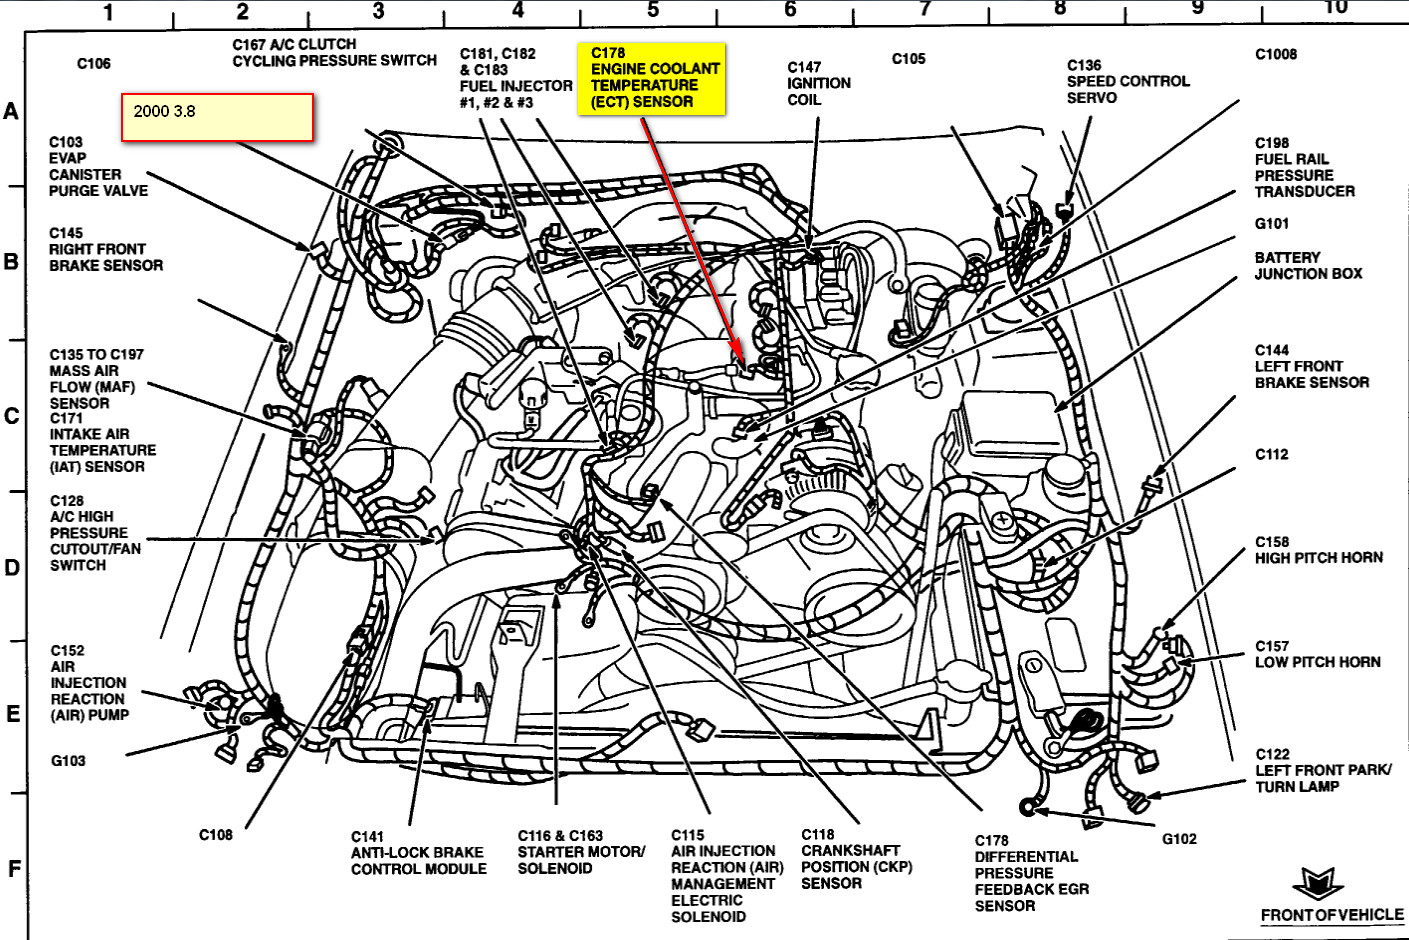 0rk4q Windstar V6 3 8 Engine Firing Order Coil Wire Hookup besides T5943055 Need diagram firing order 1997 moreover Vortec o2 sensors in addition 99 Cabrio Fuel Pump Relay Location also Boost leak guide. on coil pack 2001 ford mustang